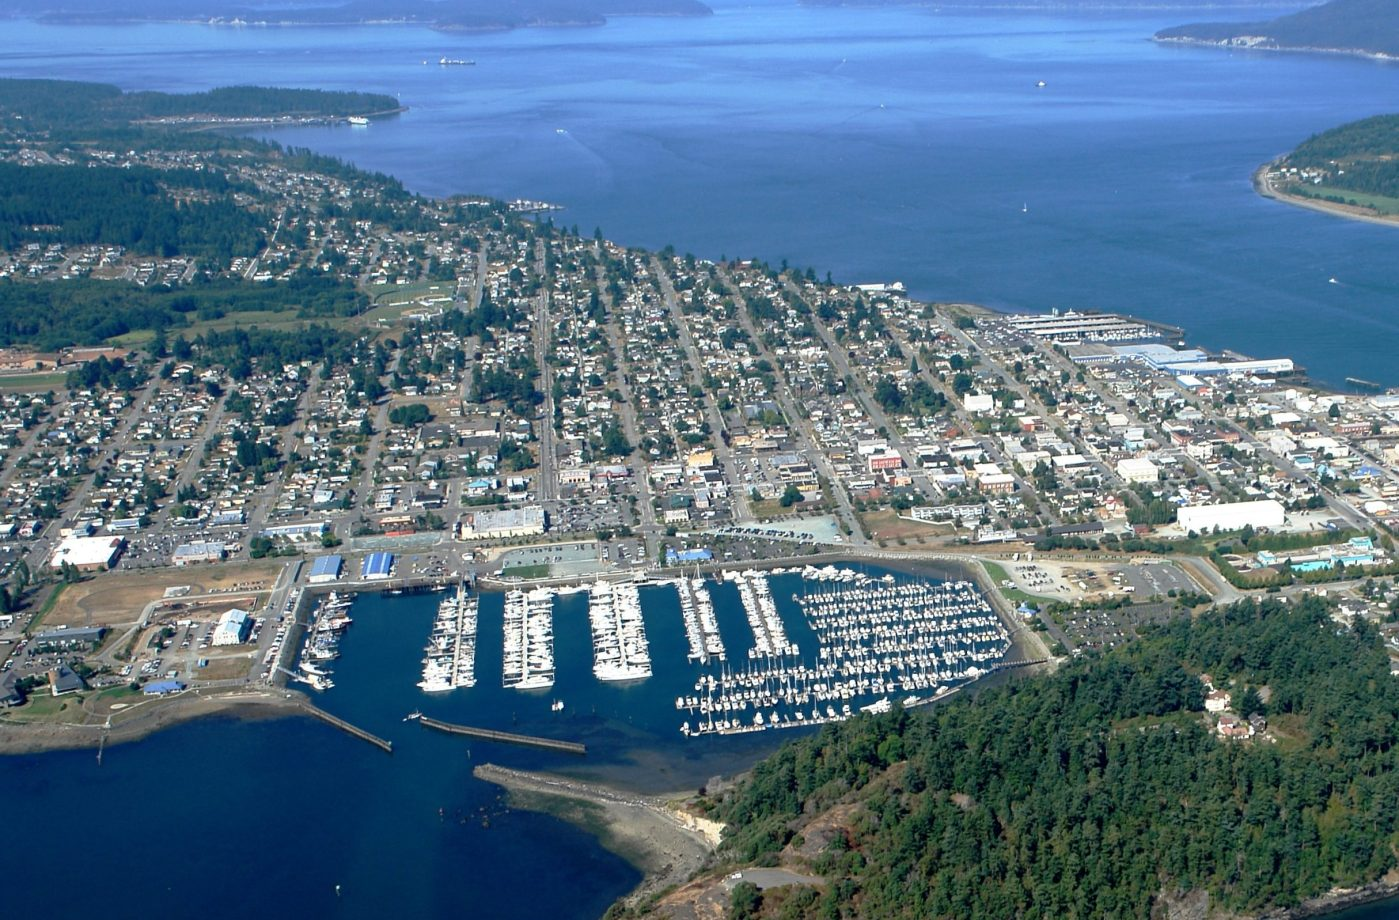 Downtown City of Anacortes Photo Taken From the West